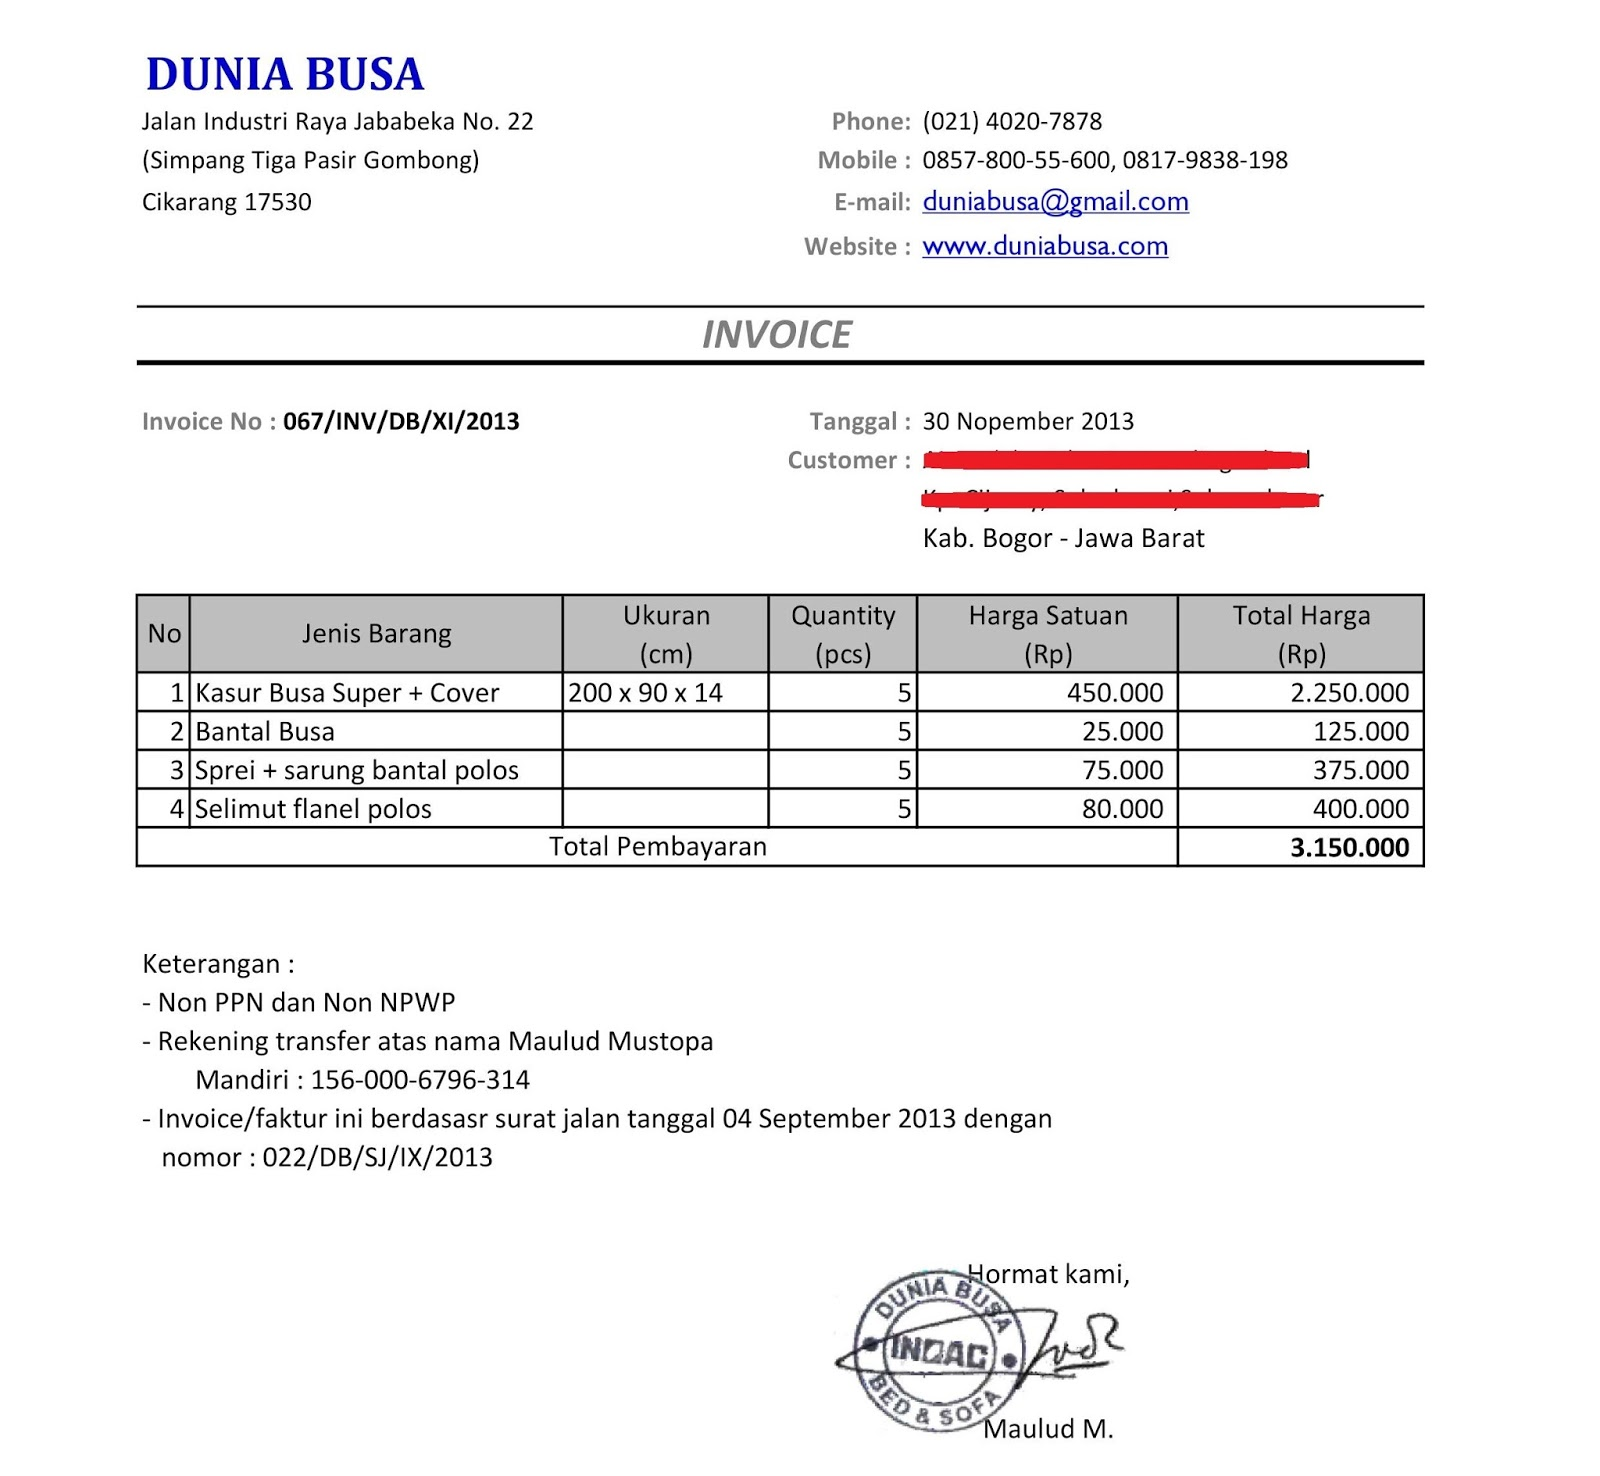 Shopdesignsus  Unusual Free Invoice Online  Create Invoice Online  Invoice Template  With Goodlooking Contoh Format Invoice Atau Surat Tagihan  Brankas Arsip  Free Invoice Online With Endearing Invoice Software For Small Business Also Vendor Invoice Posting In Sap In Addition Services Rendered Invoice And Consultant Invoice As Well As Invoice Price By Vin Additionally Tracing Bills Of Lading To Sales Invoices Provides Evidence That From Sklepco With Shopdesignsus  Goodlooking Free Invoice Online  Create Invoice Online  Invoice Template  With Endearing Contoh Format Invoice Atau Surat Tagihan  Brankas Arsip  Free Invoice Online And Unusual Invoice Software For Small Business Also Vendor Invoice Posting In Sap In Addition Services Rendered Invoice From Sklepco